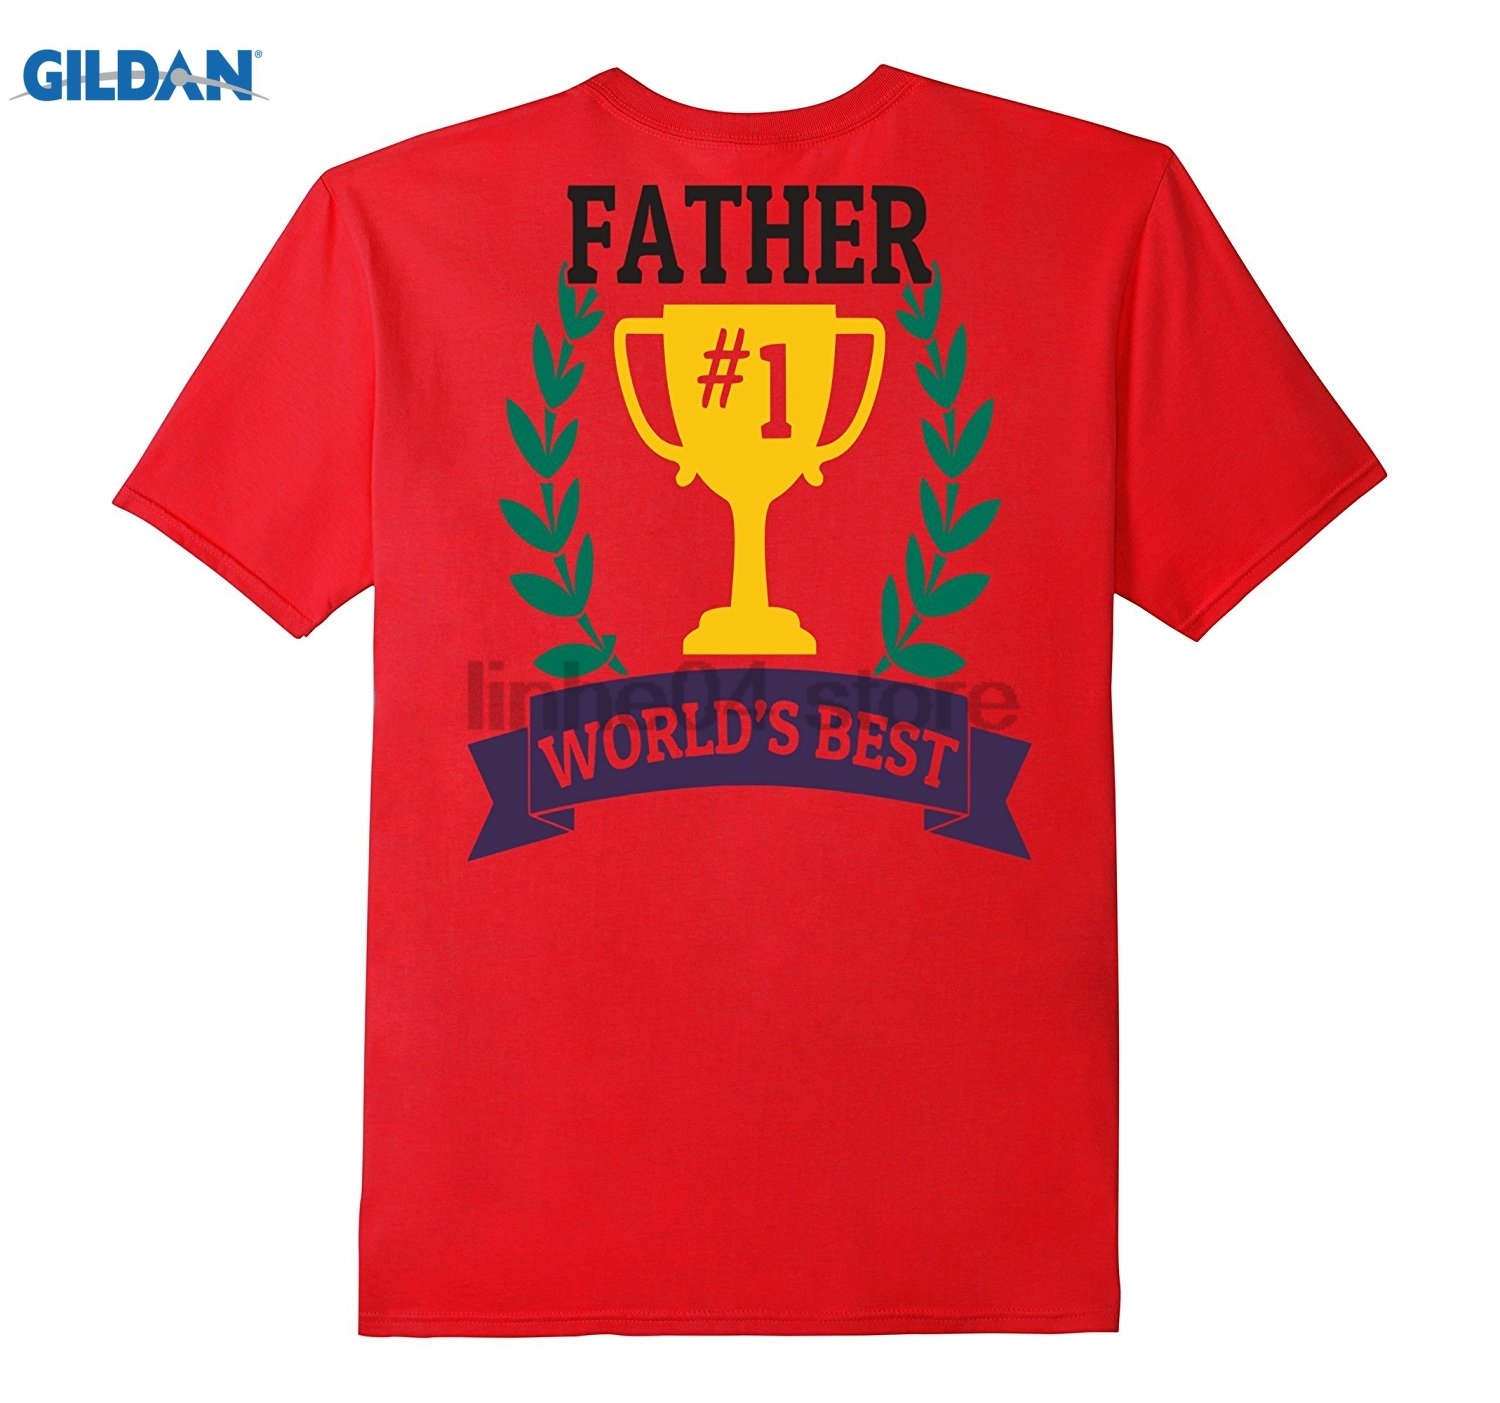 GILDAN Worlds Best Father Trophy Shirt Dad Fathers Day Gift Daddy Dress female T-shirt